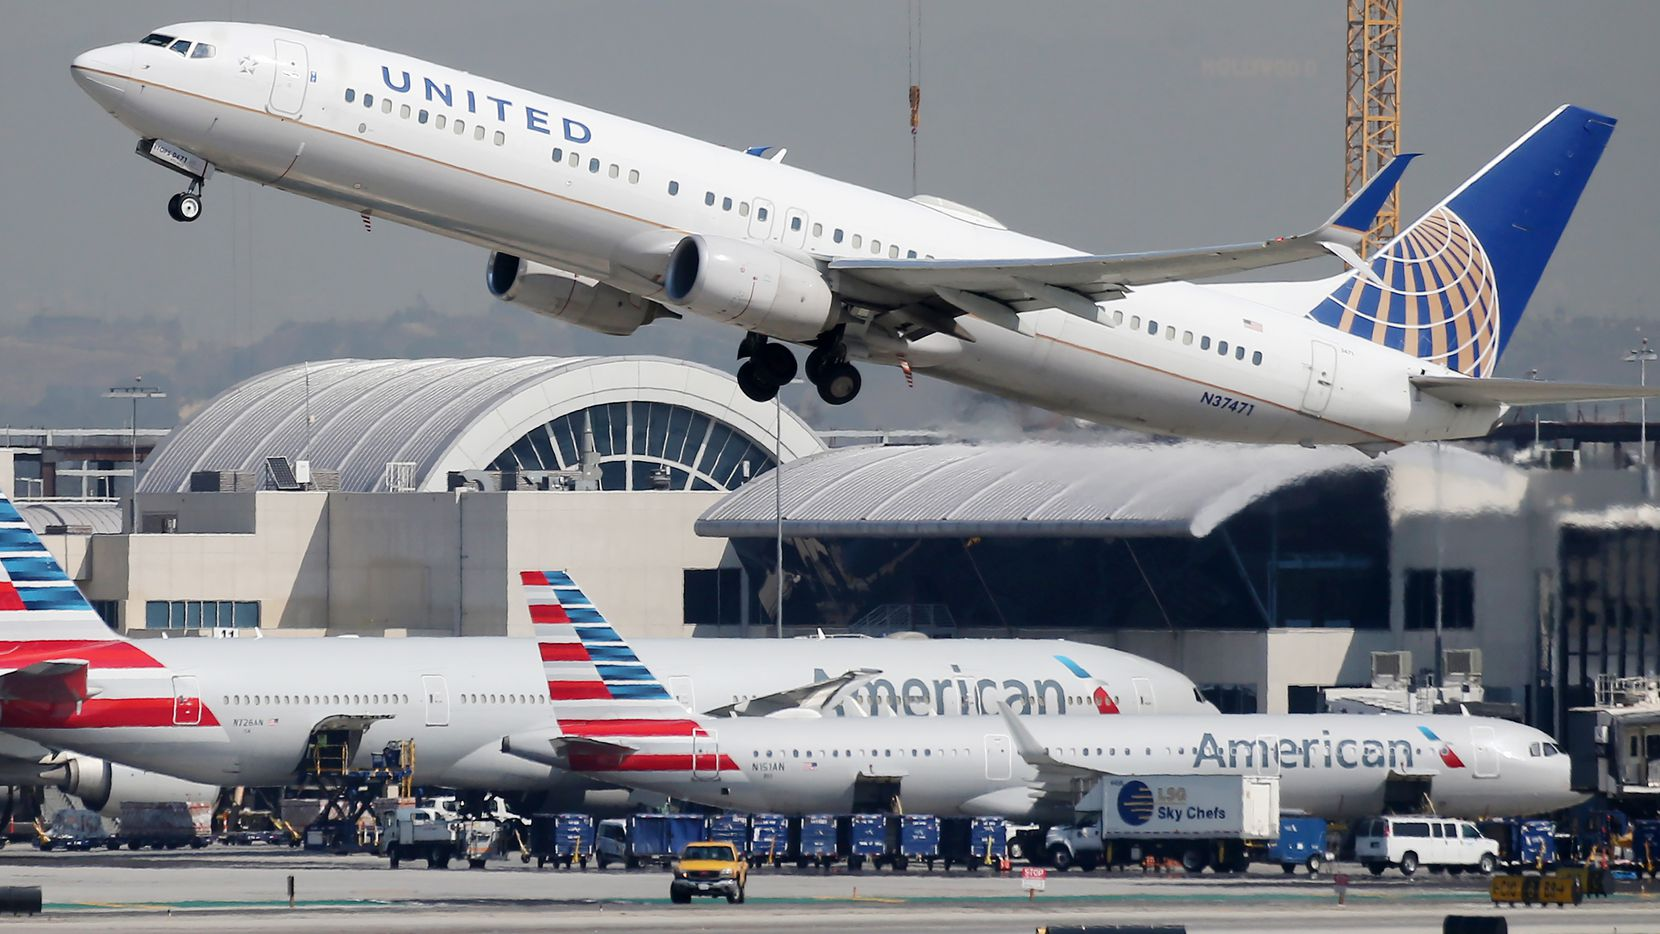 A United Airlines plane takes off above American Airlines planes on the tarmac at Los Angeles International Airport on Oct. 1.